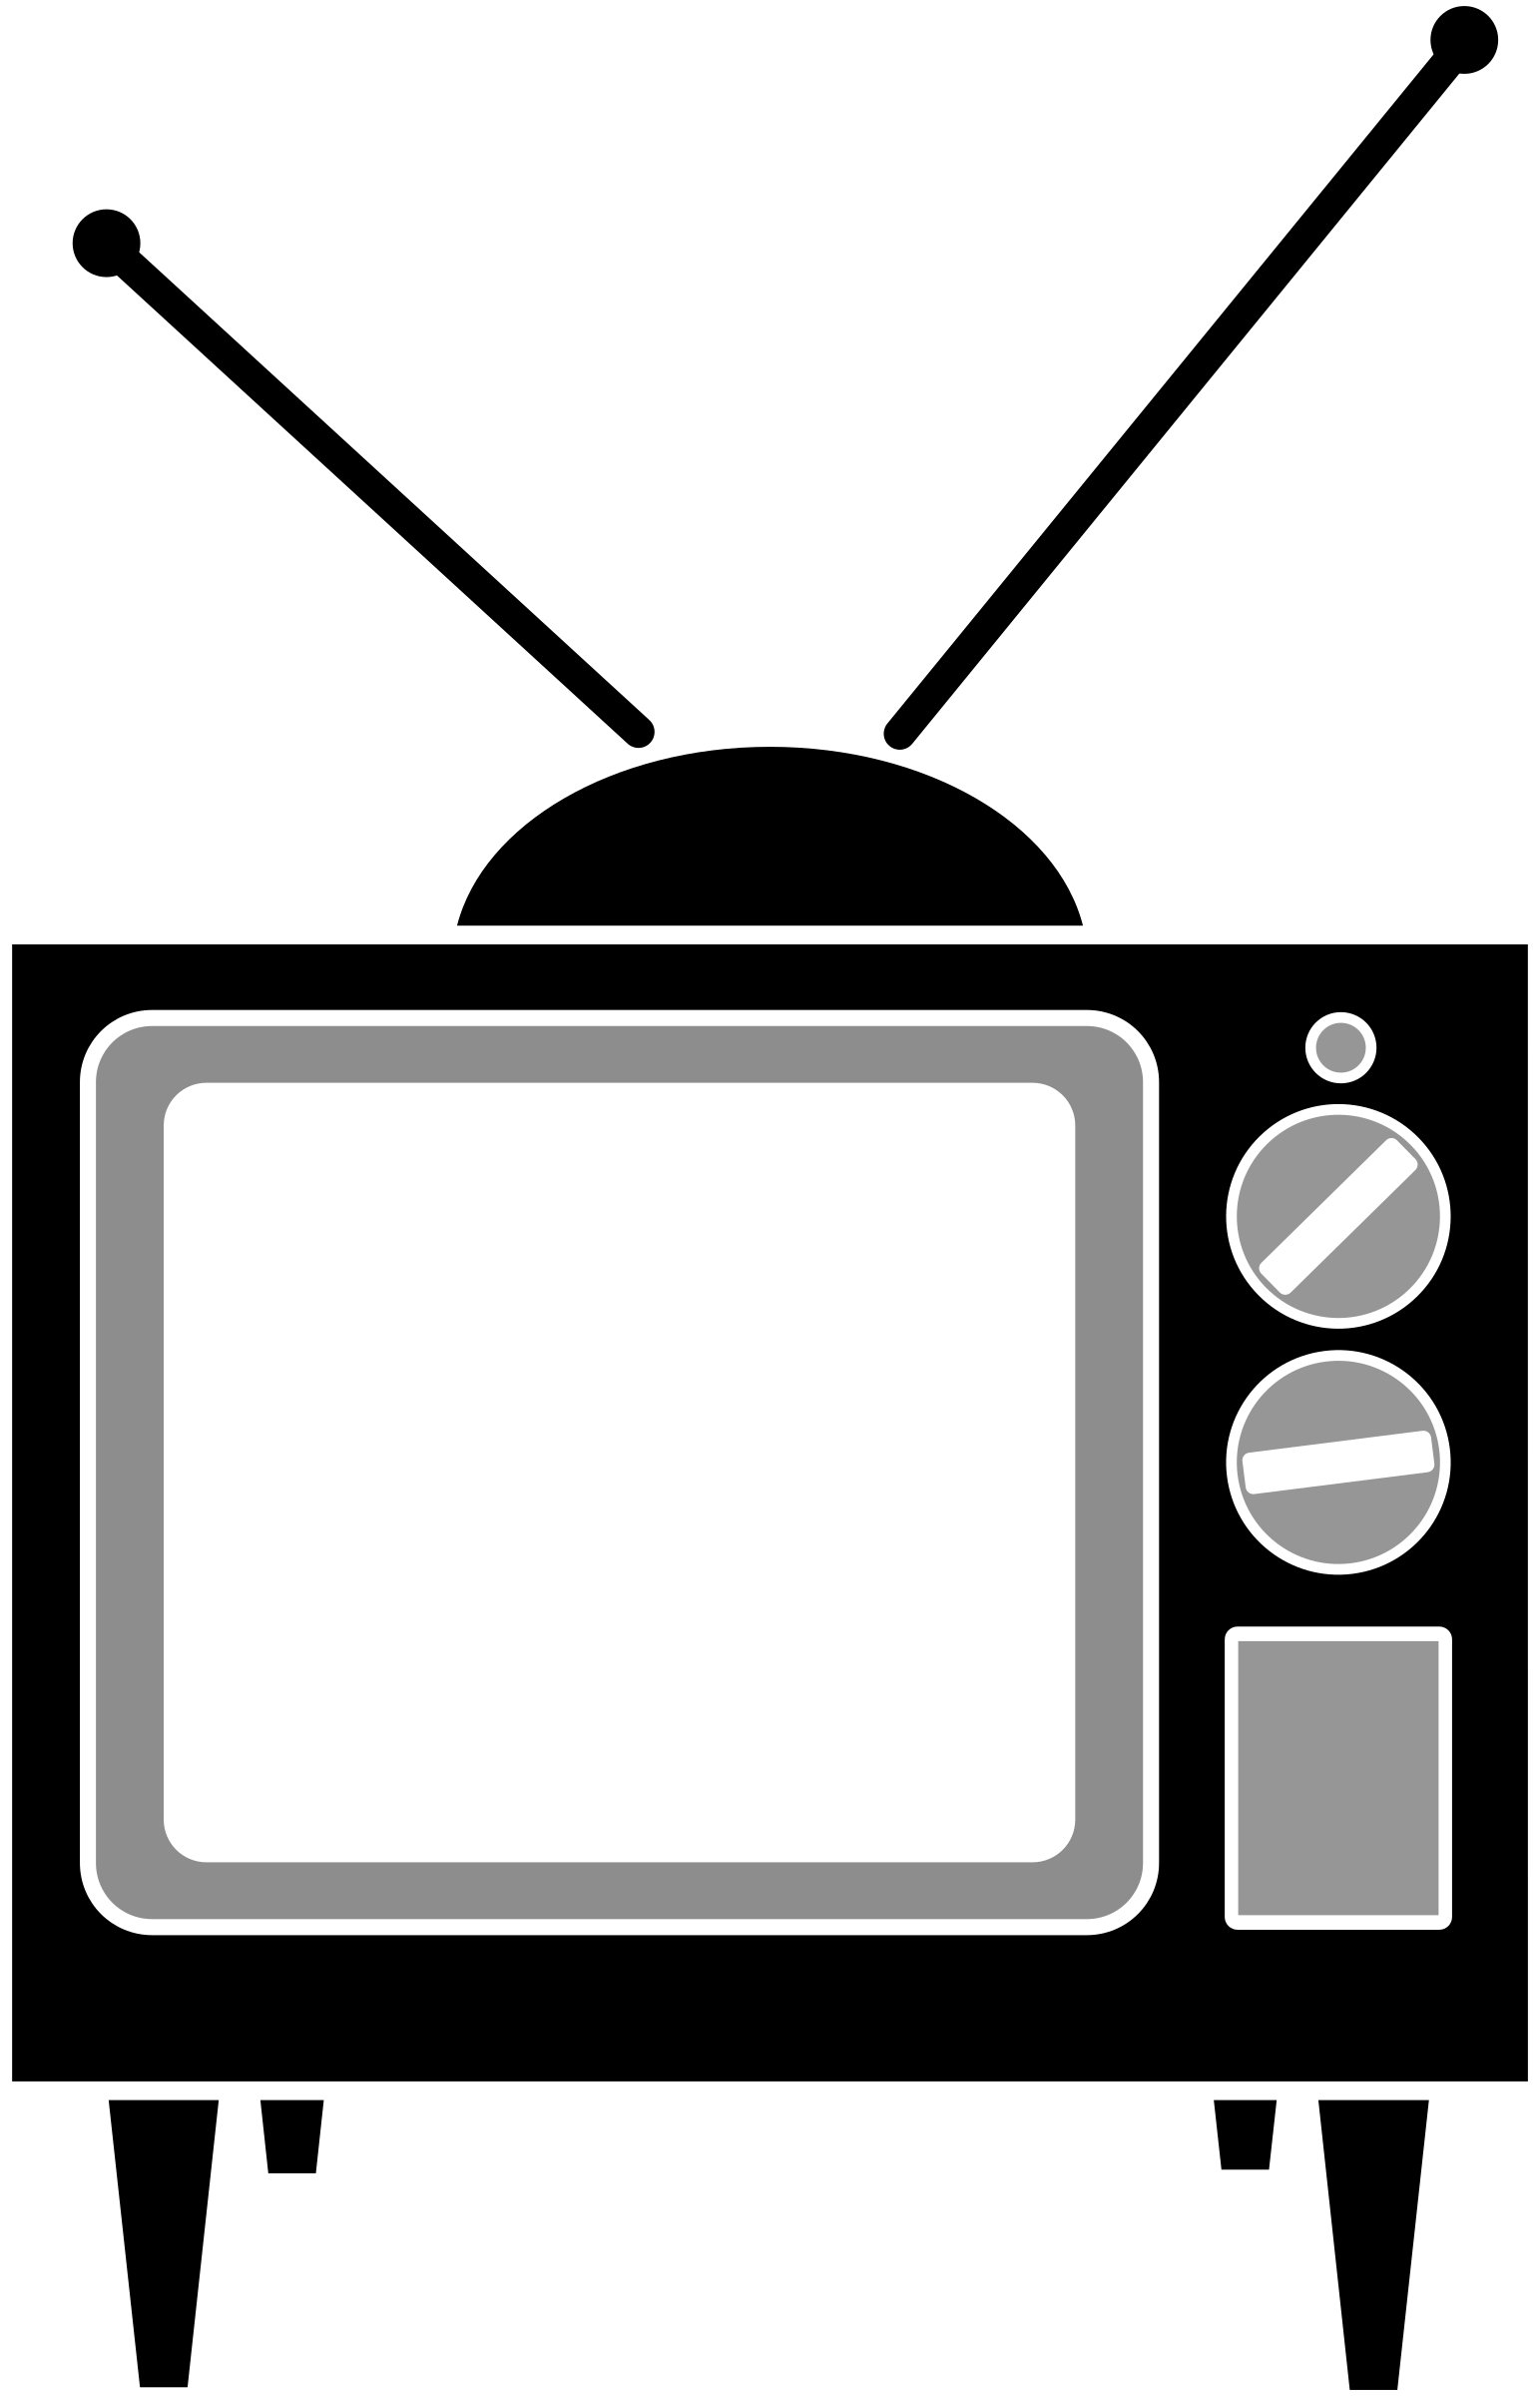 Television clipart crt tv. Simple big image png